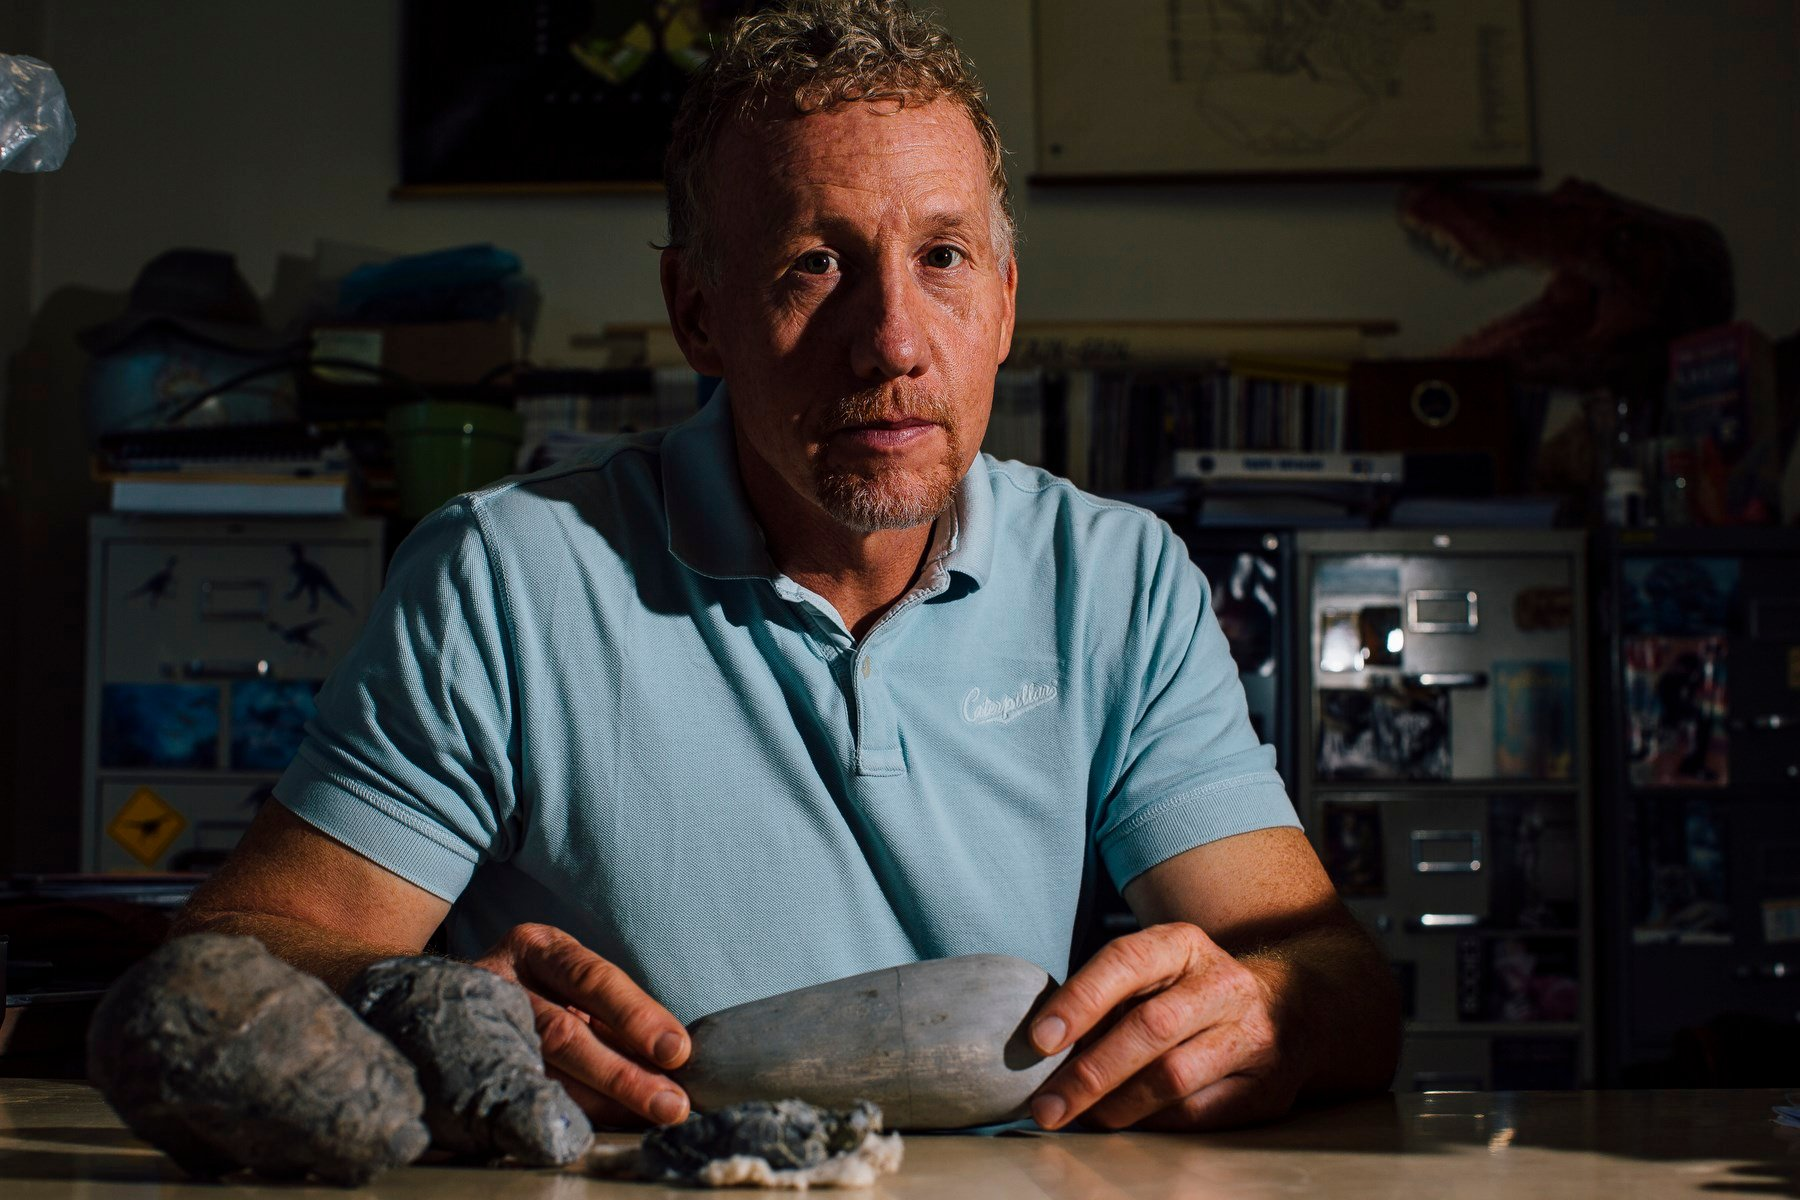 David Varricchio, associate professor of paleontology in the Department of Earth Sciences at Montana State University, co-authored a paper about a new species of tyrannosaur discovered in Montana. MSU Photo by Adrian Sanchez-Gonzalez